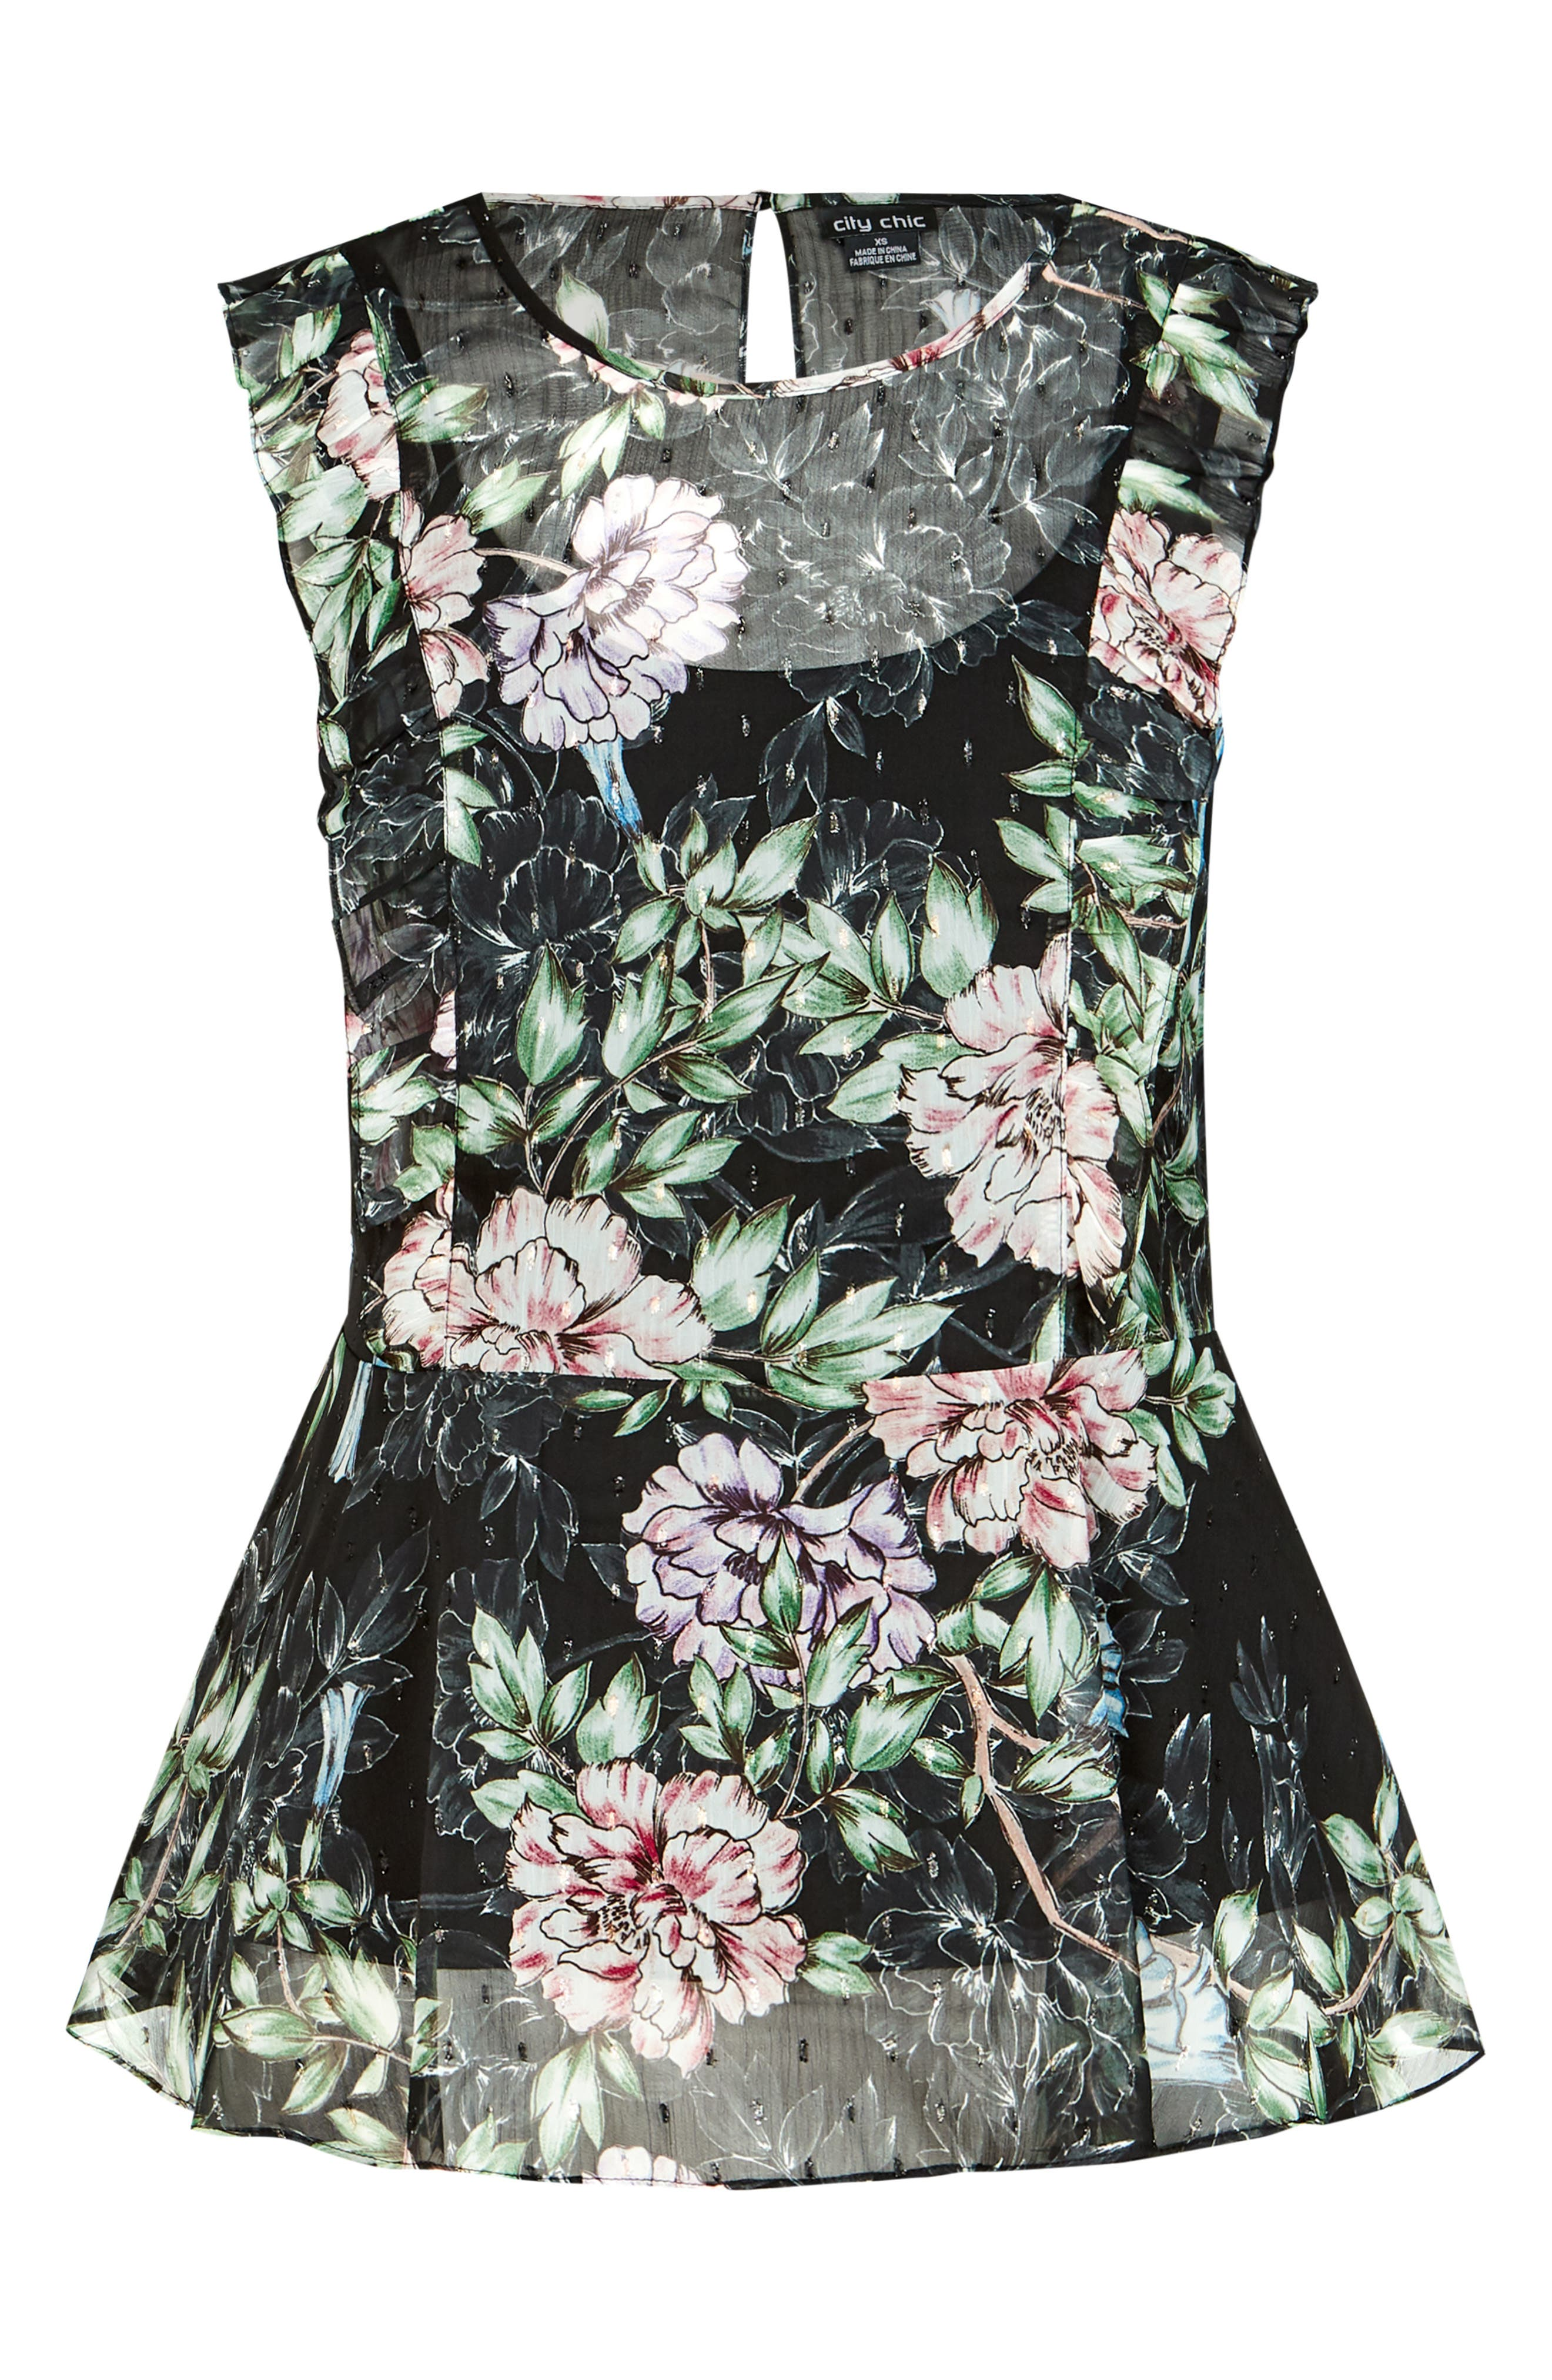 CITY CHIC,                             Delicate Blossom Top,                             Alternate thumbnail 4, color,                             001